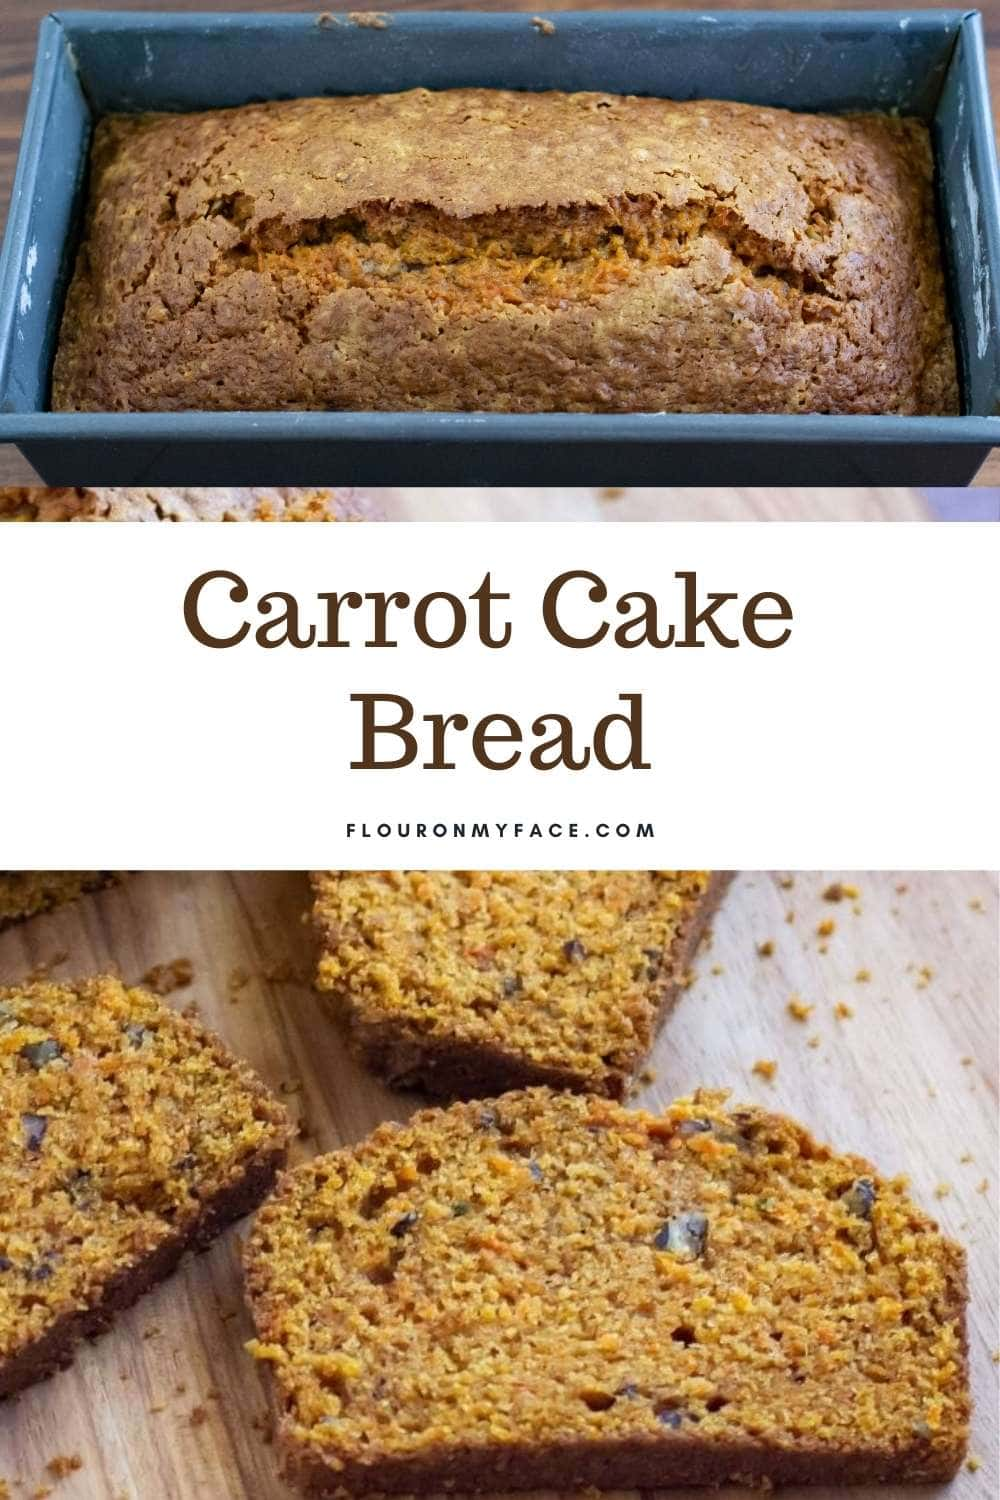 Collage image of Carrot Cake Bread in a pan and sliced.